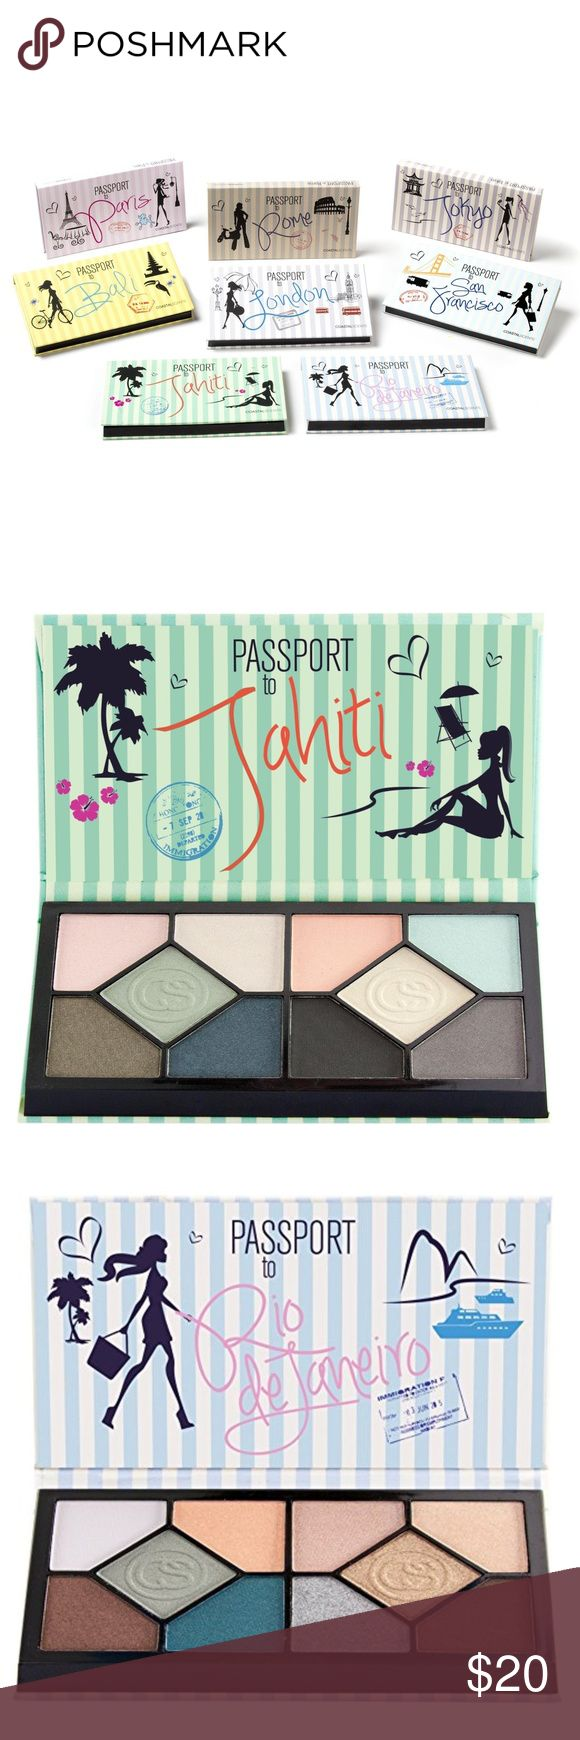 Coastal Scents Passport to Beauty Collection of 3 Includes Bali, Rio de Janeiro, and Tahiti. Can also be sold separately.   Each shadow is a collection of 10 individual shadow pans.  Includes matte and shimmer shadows Coastal Scents Makeup Eyeshadow